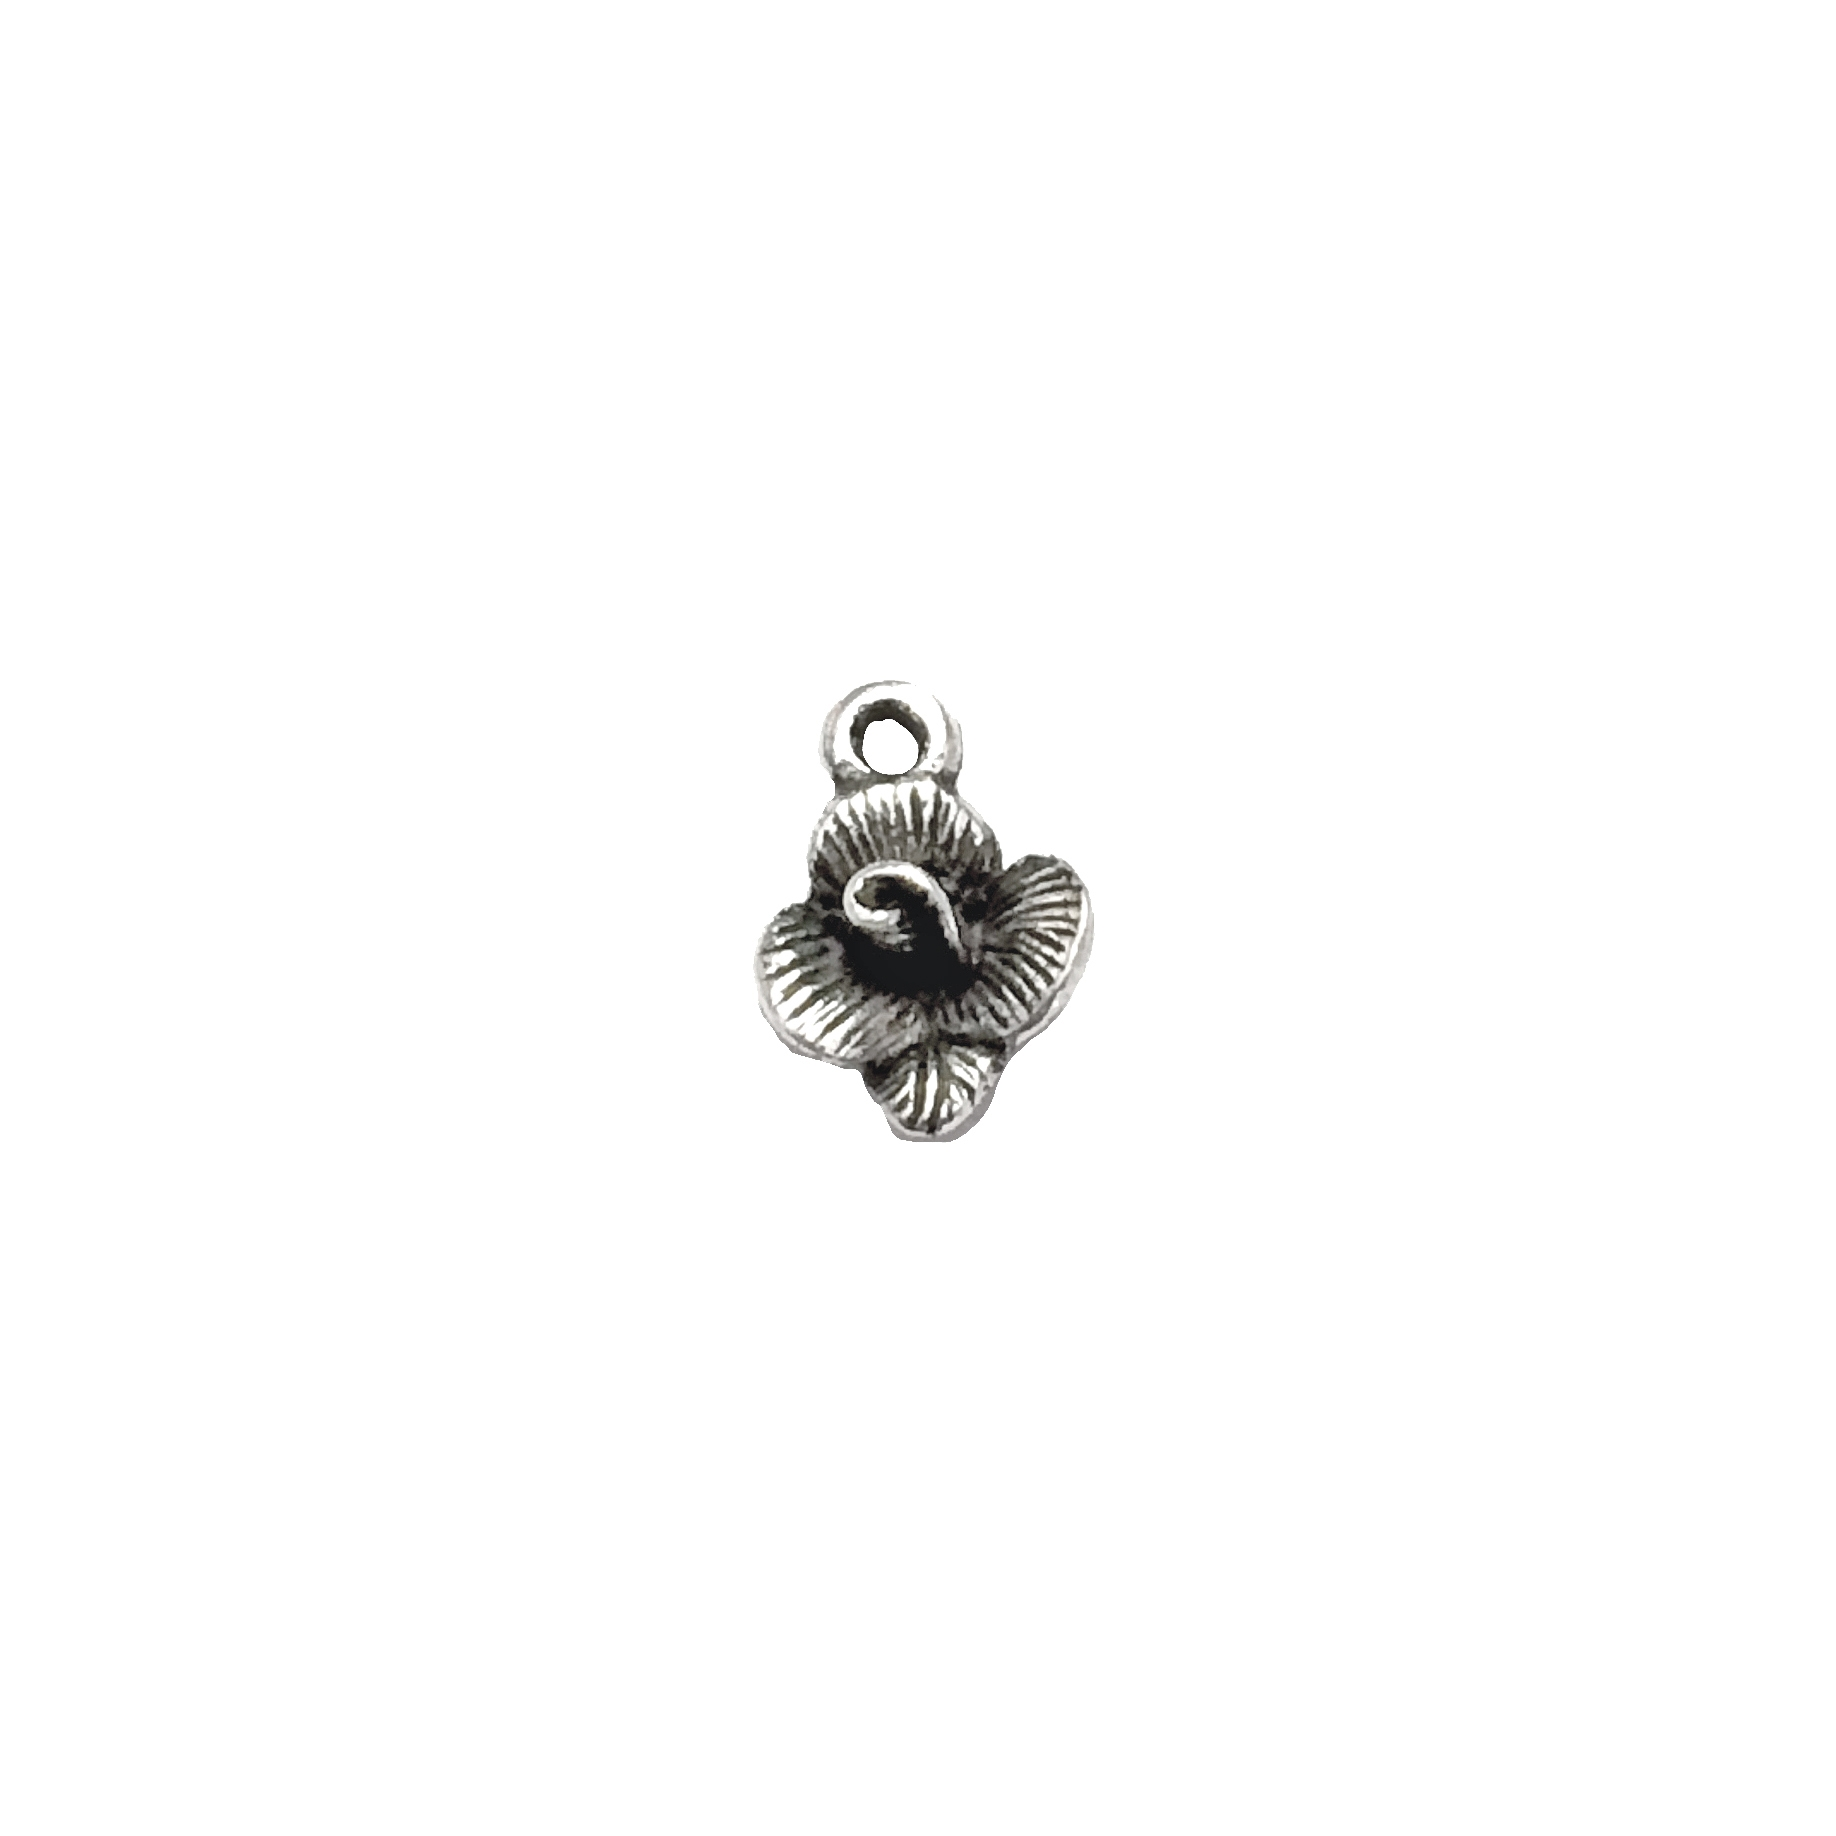 vintage pewter castings, B'sue by 1928, floral charms, bracelet making, old silver, nickel free, lead free pewter, rusted iron, us made, designer jewelry, vintage jewelry supplies, 1928 jewelry, B'sue Boutique, 13x9mm, flower charm, charm, flower, 01031